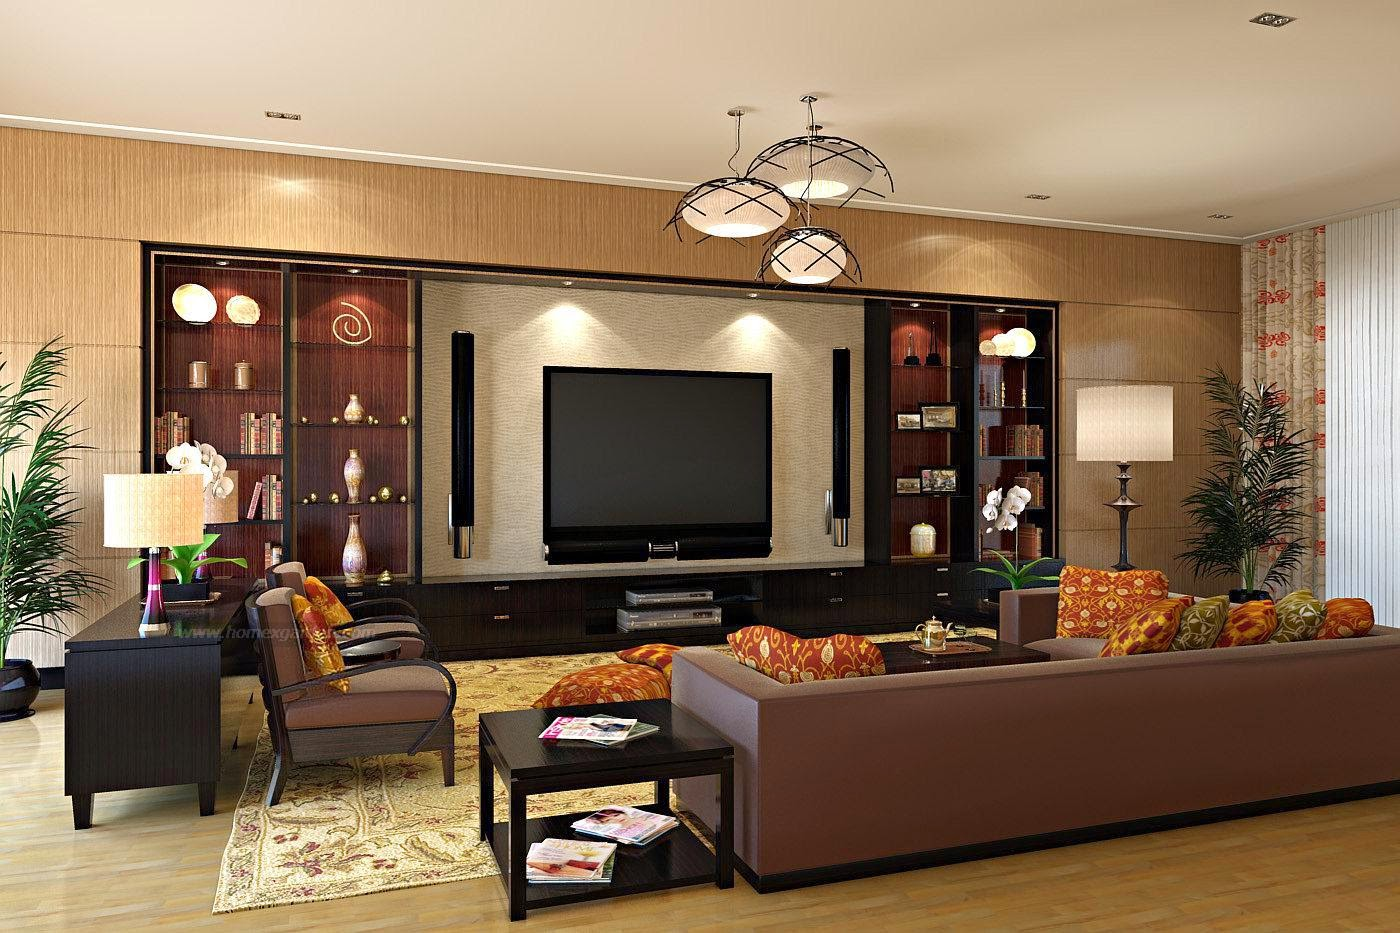 Big familly Livingroom design